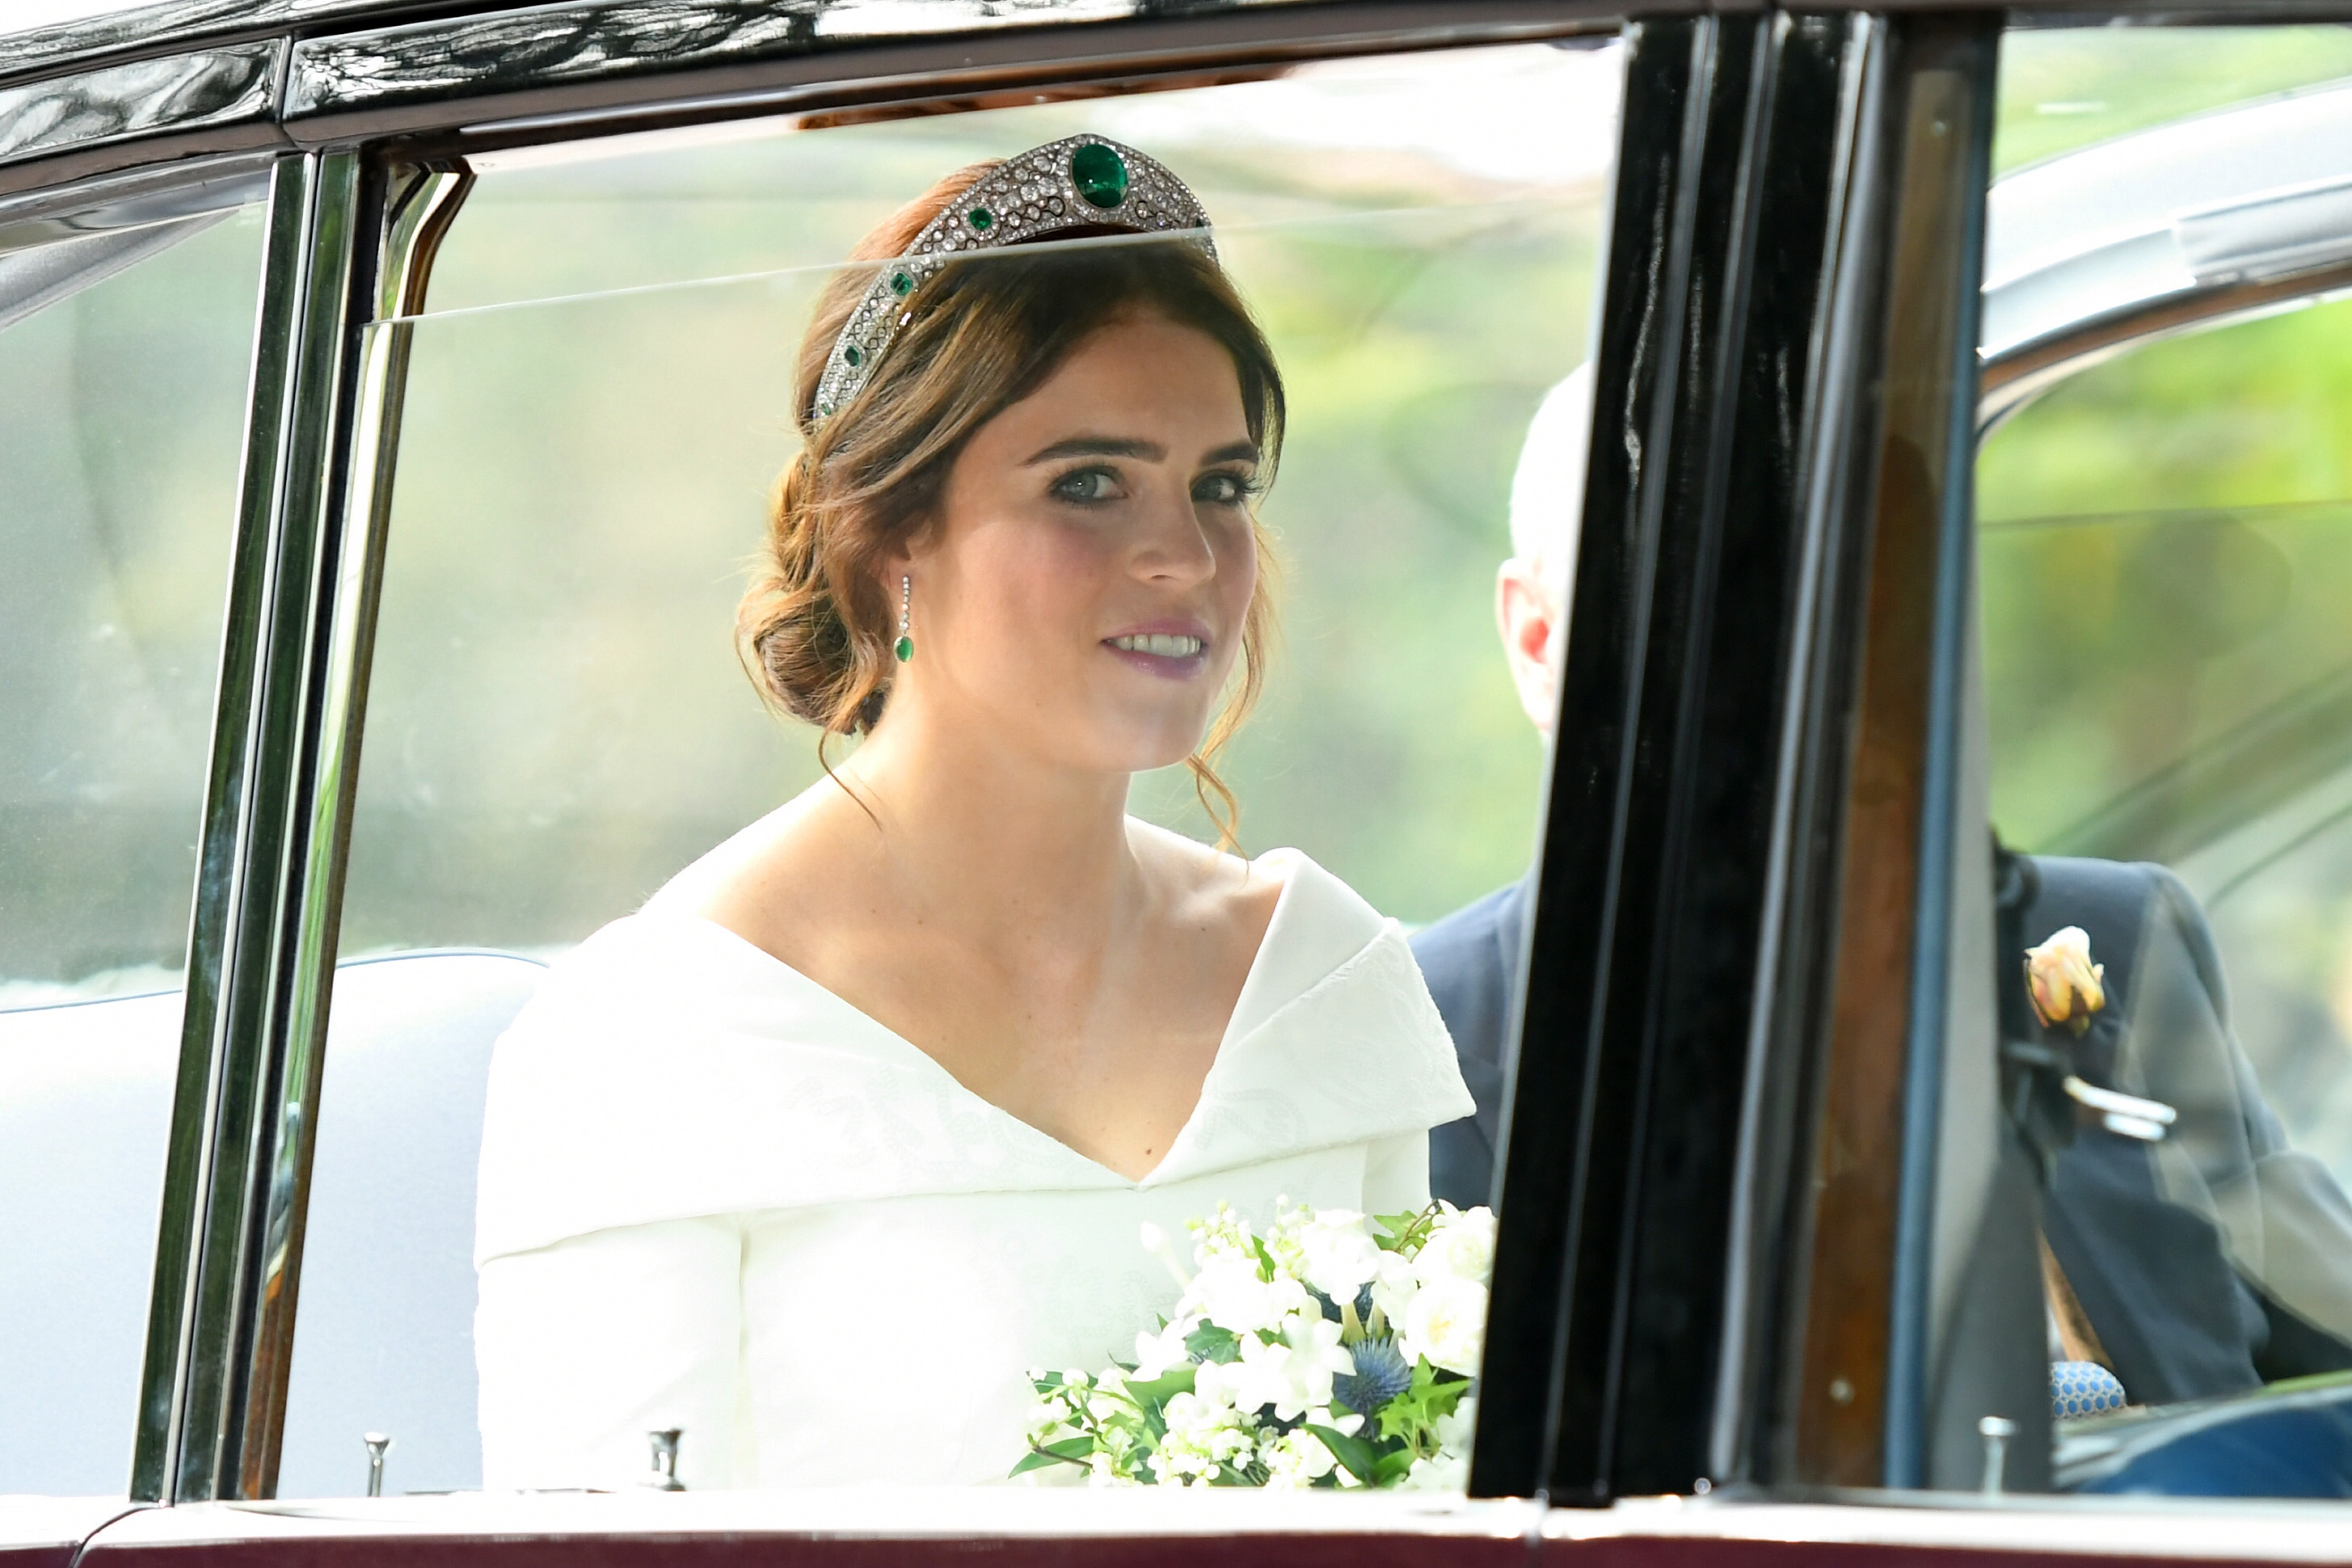 <div class='meta'><div class='origin-logo' data-origin='none'></div><span class='caption-text' data-credit='Karwai Tang/WireImage via Getty'>Bride Princess Eugenie of York with her father Prince Andrew, Duke of York arrives by car for her Royal wedding to Mr. Jack Brooksbank at St. George's Chapel on October 12, 2018.</span></div>